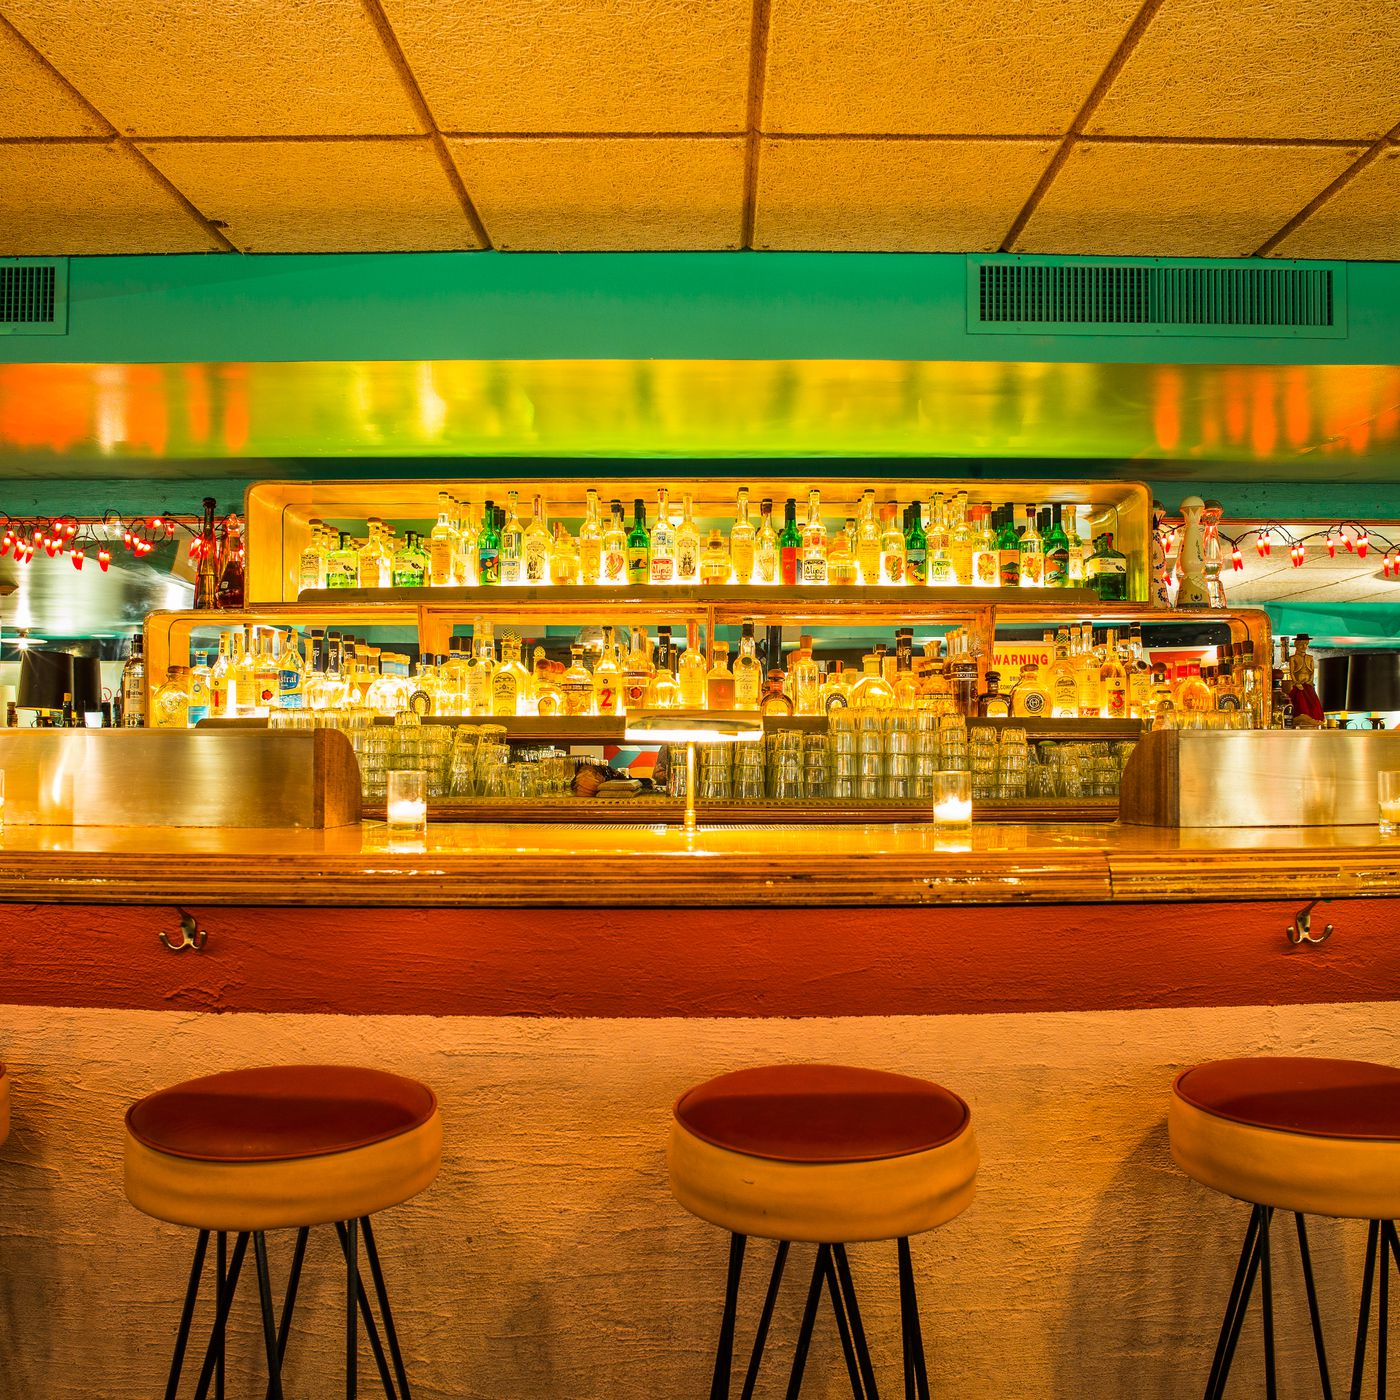 Top Tequila Bars and Restaurant In Los Angeles